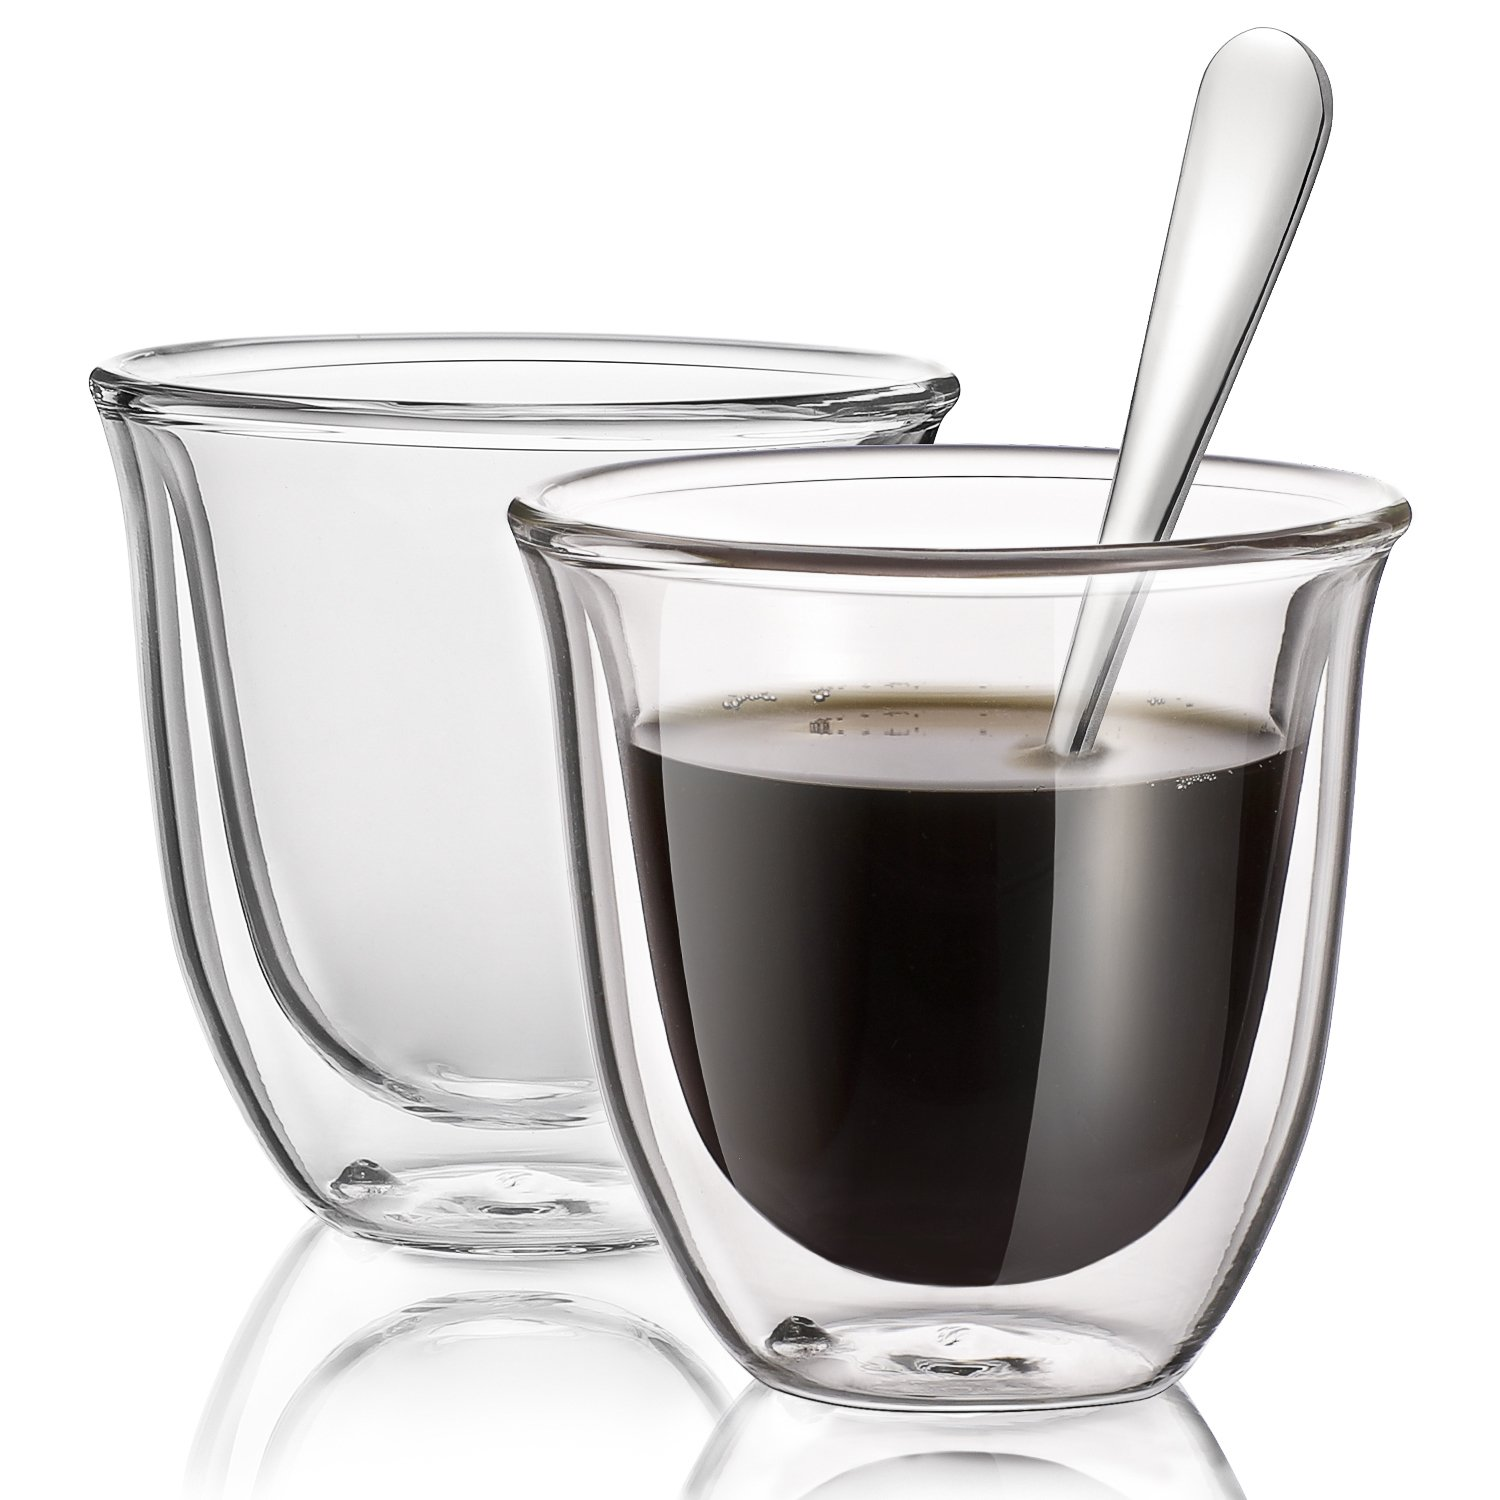 Hiware Espresso Glasses with Spoons, 2-Ounce Double Walled Thermo Espresso Cups, Set of 2 HIEG6